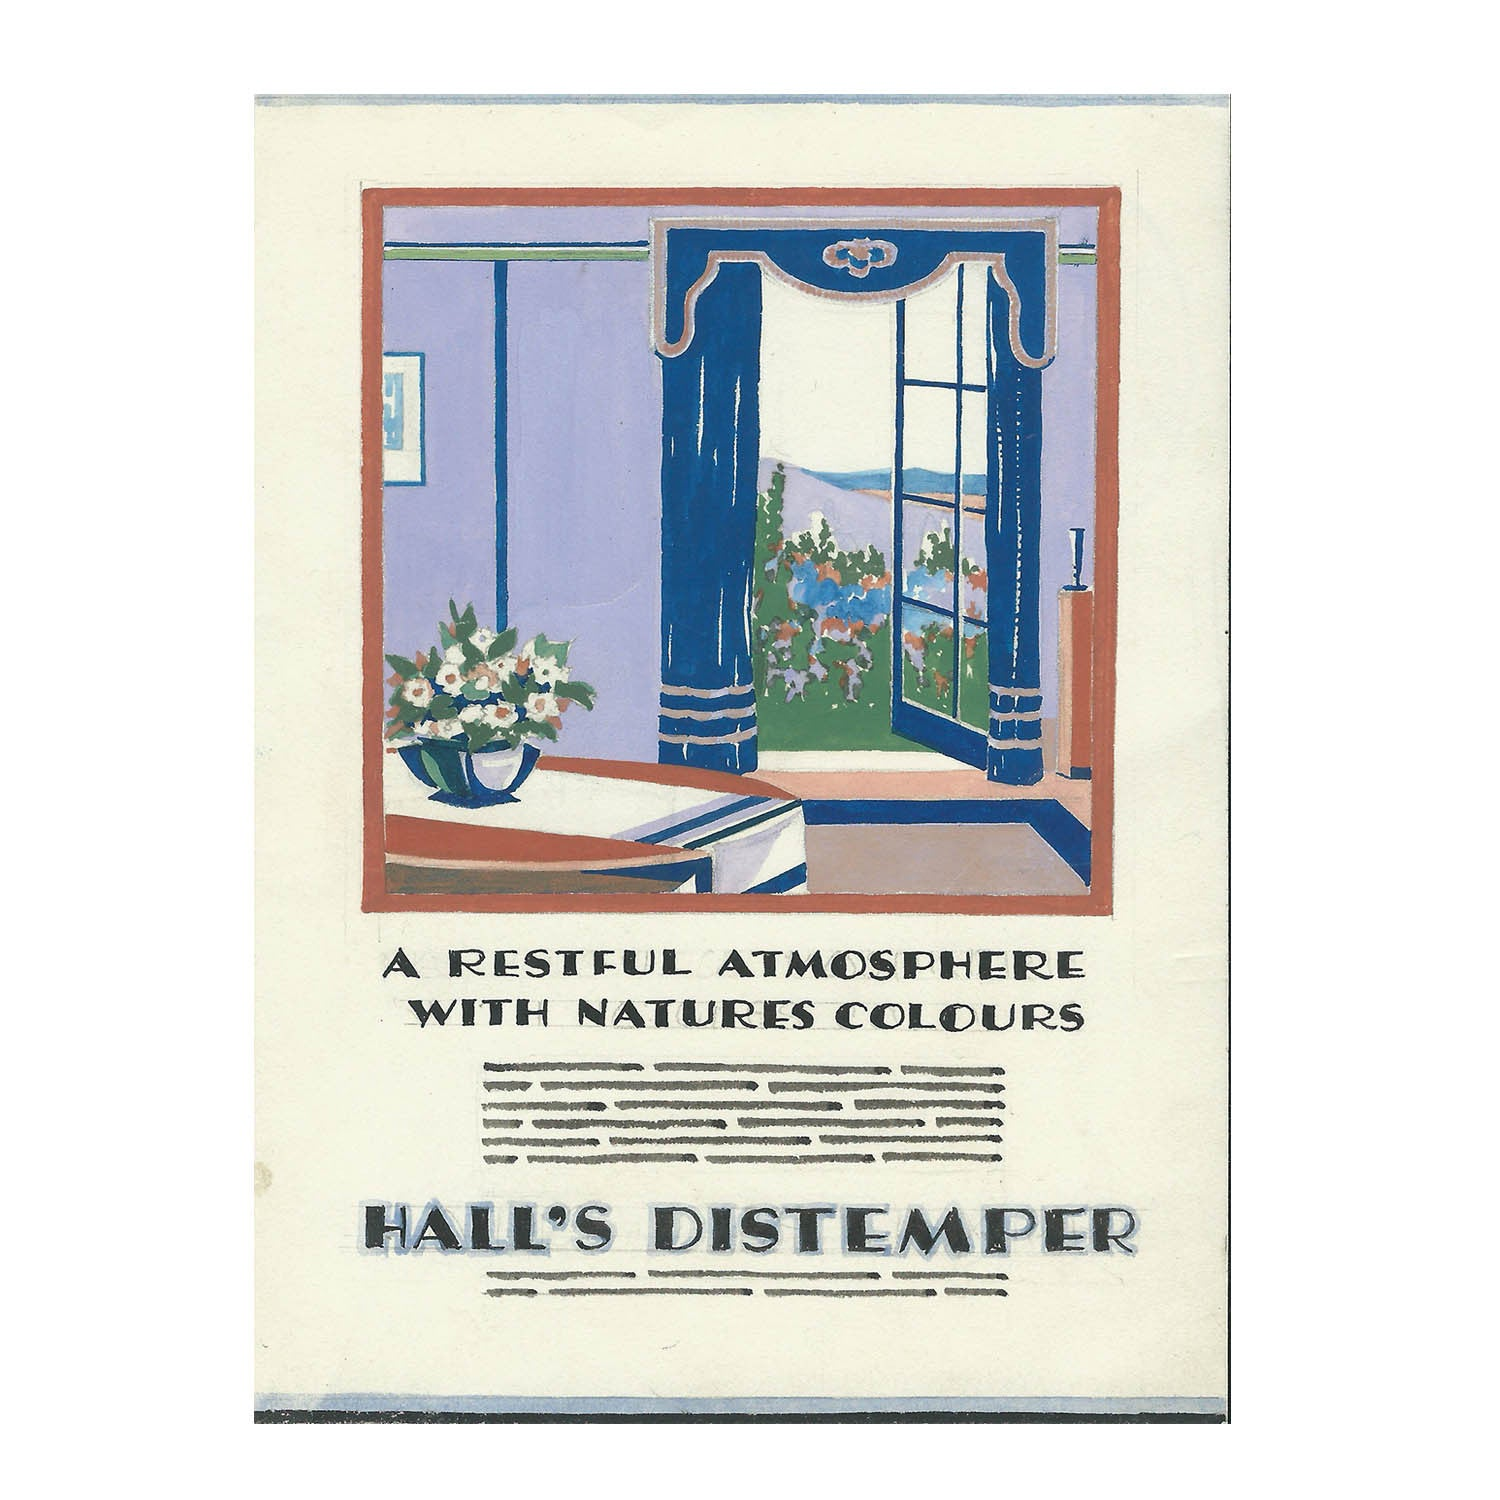 Hall's Distemper